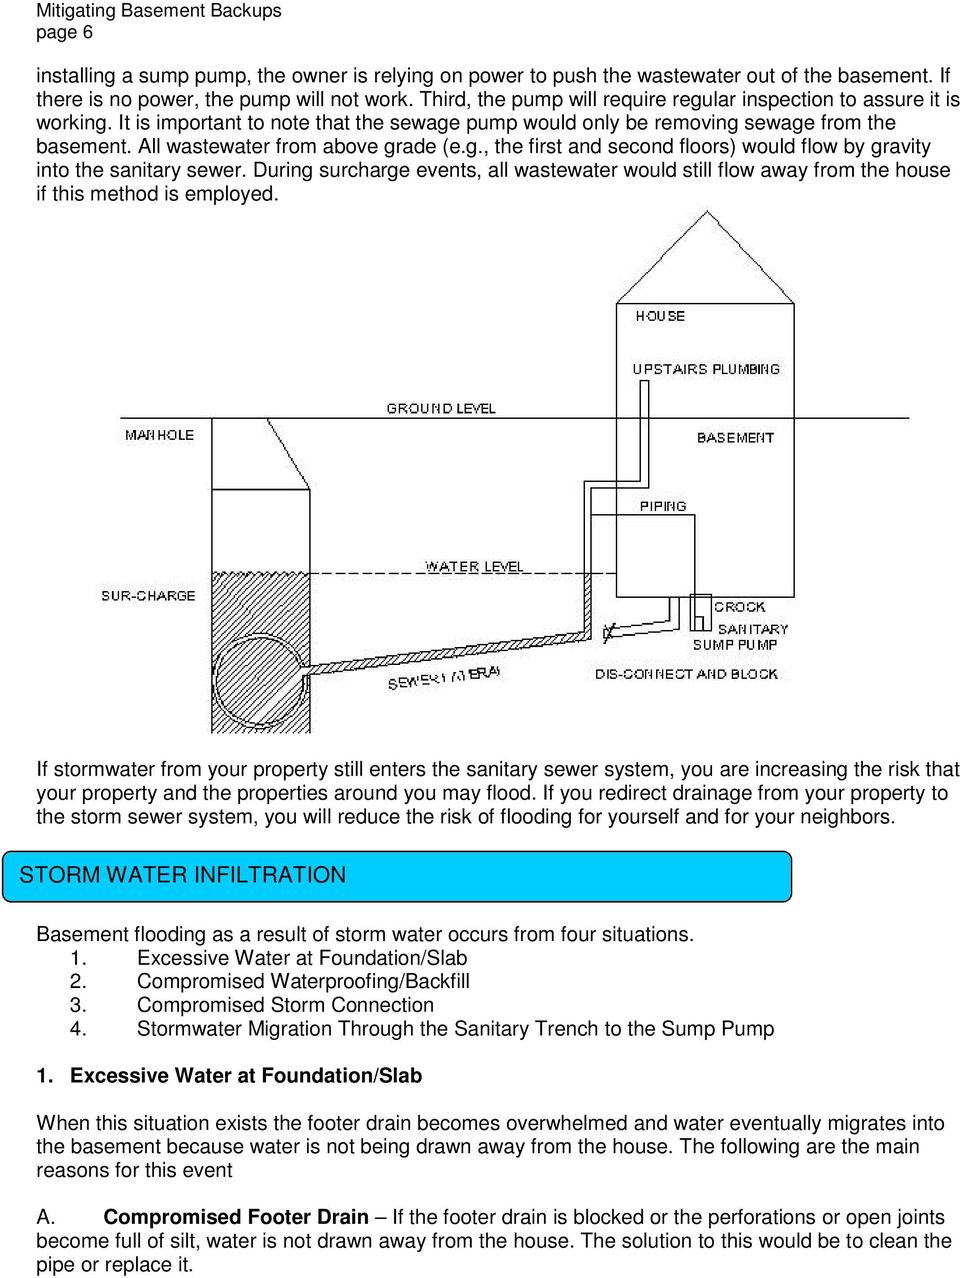 All wastewater from above grade (e.g., the first and second floors) would flow by gravity into the sanitary sewer.